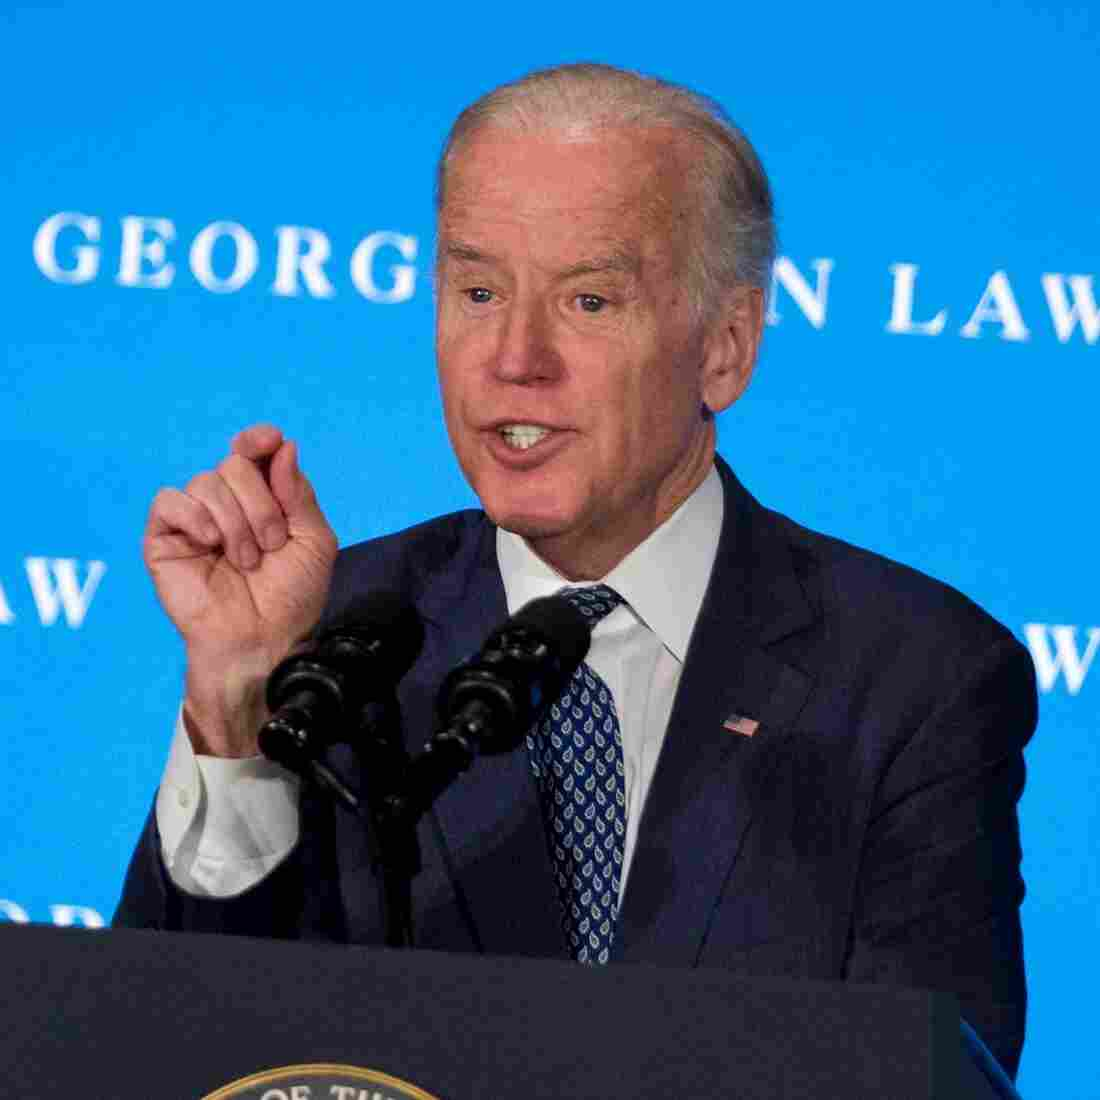 Biden Concedes Obama Nominated More Moderate Judge To Win Over Republicans